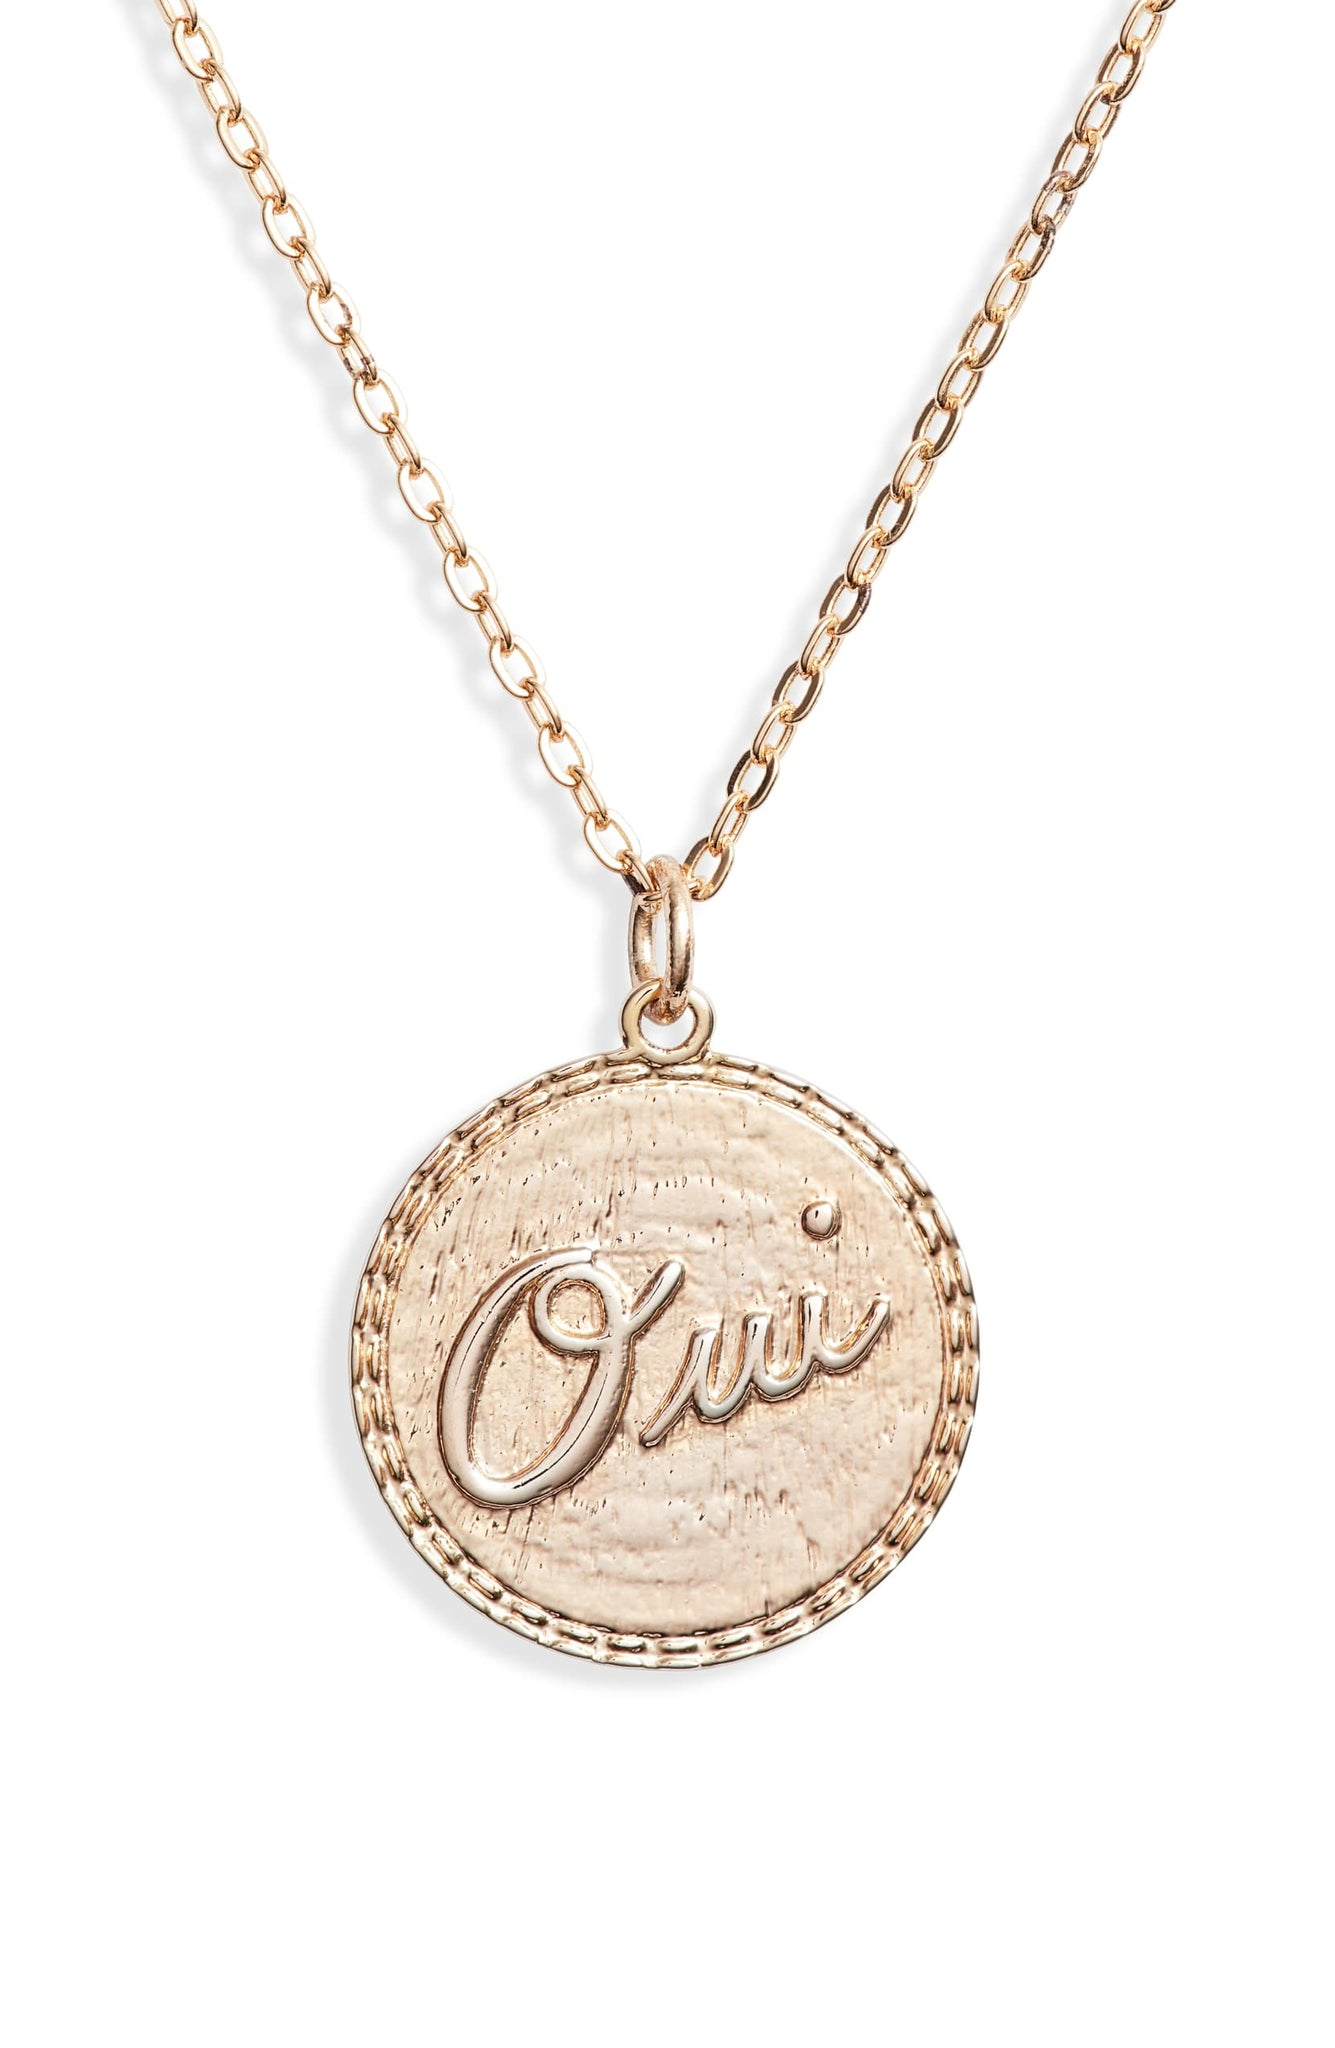 Oui Oui Charm Necklace